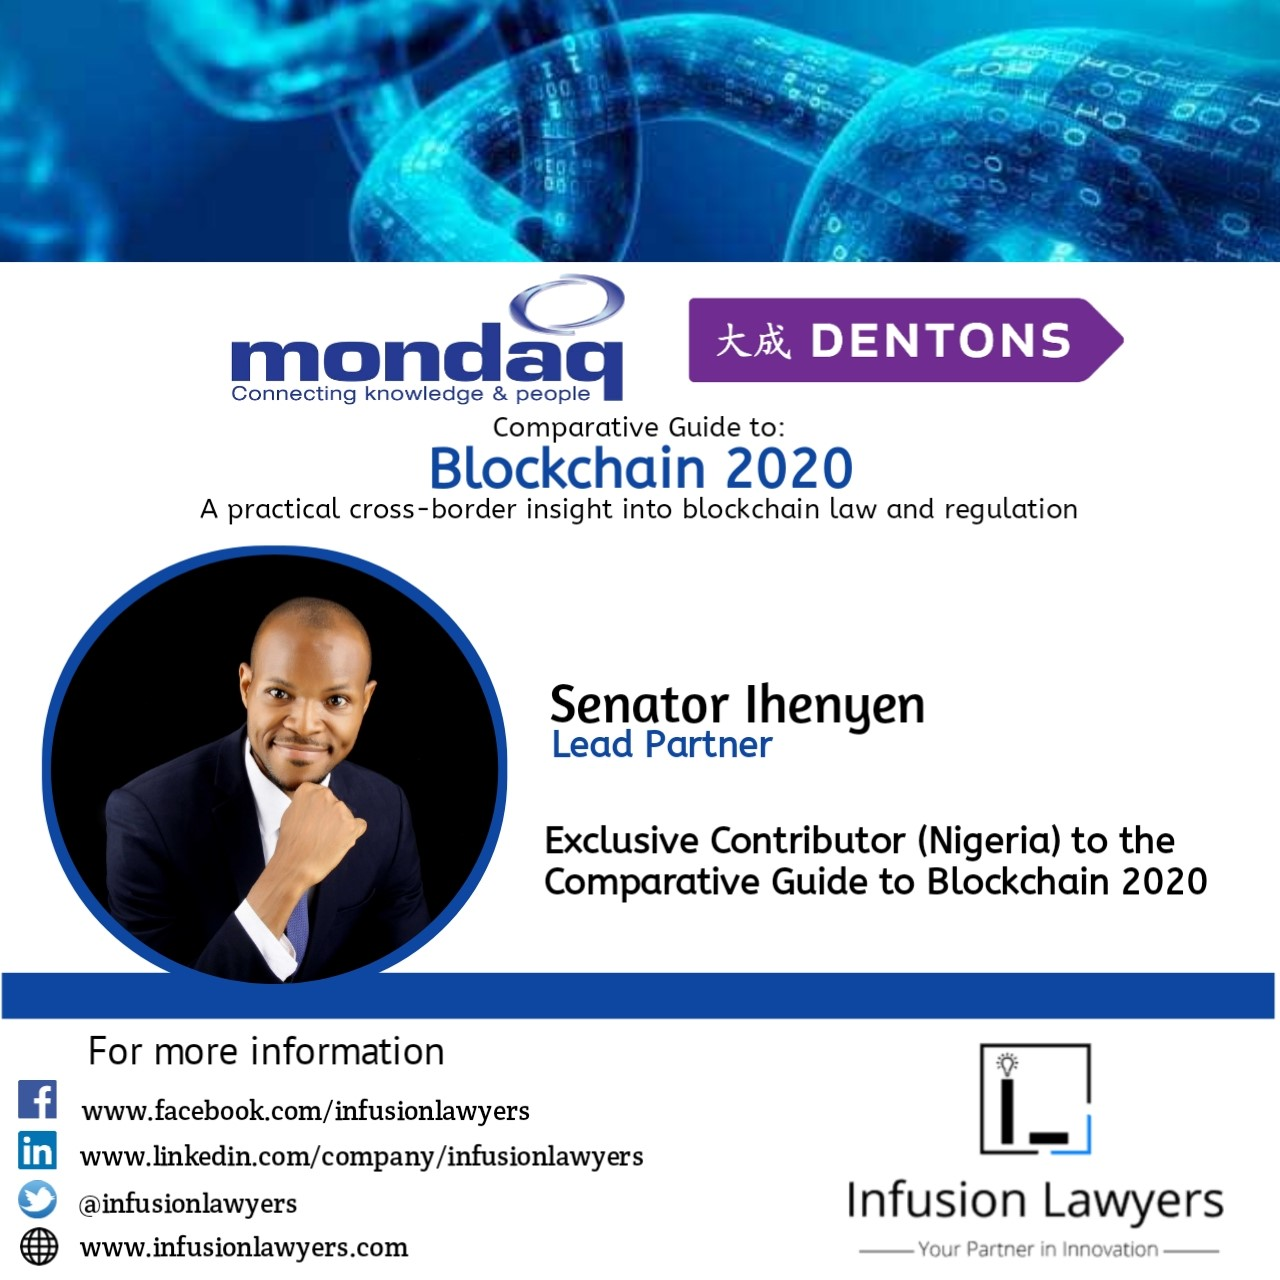 Infusion Lawyers Exclusive Contributor (Nigeria) to the Comparative Guide to Blockchain in collaboration with Dentons Mondaq